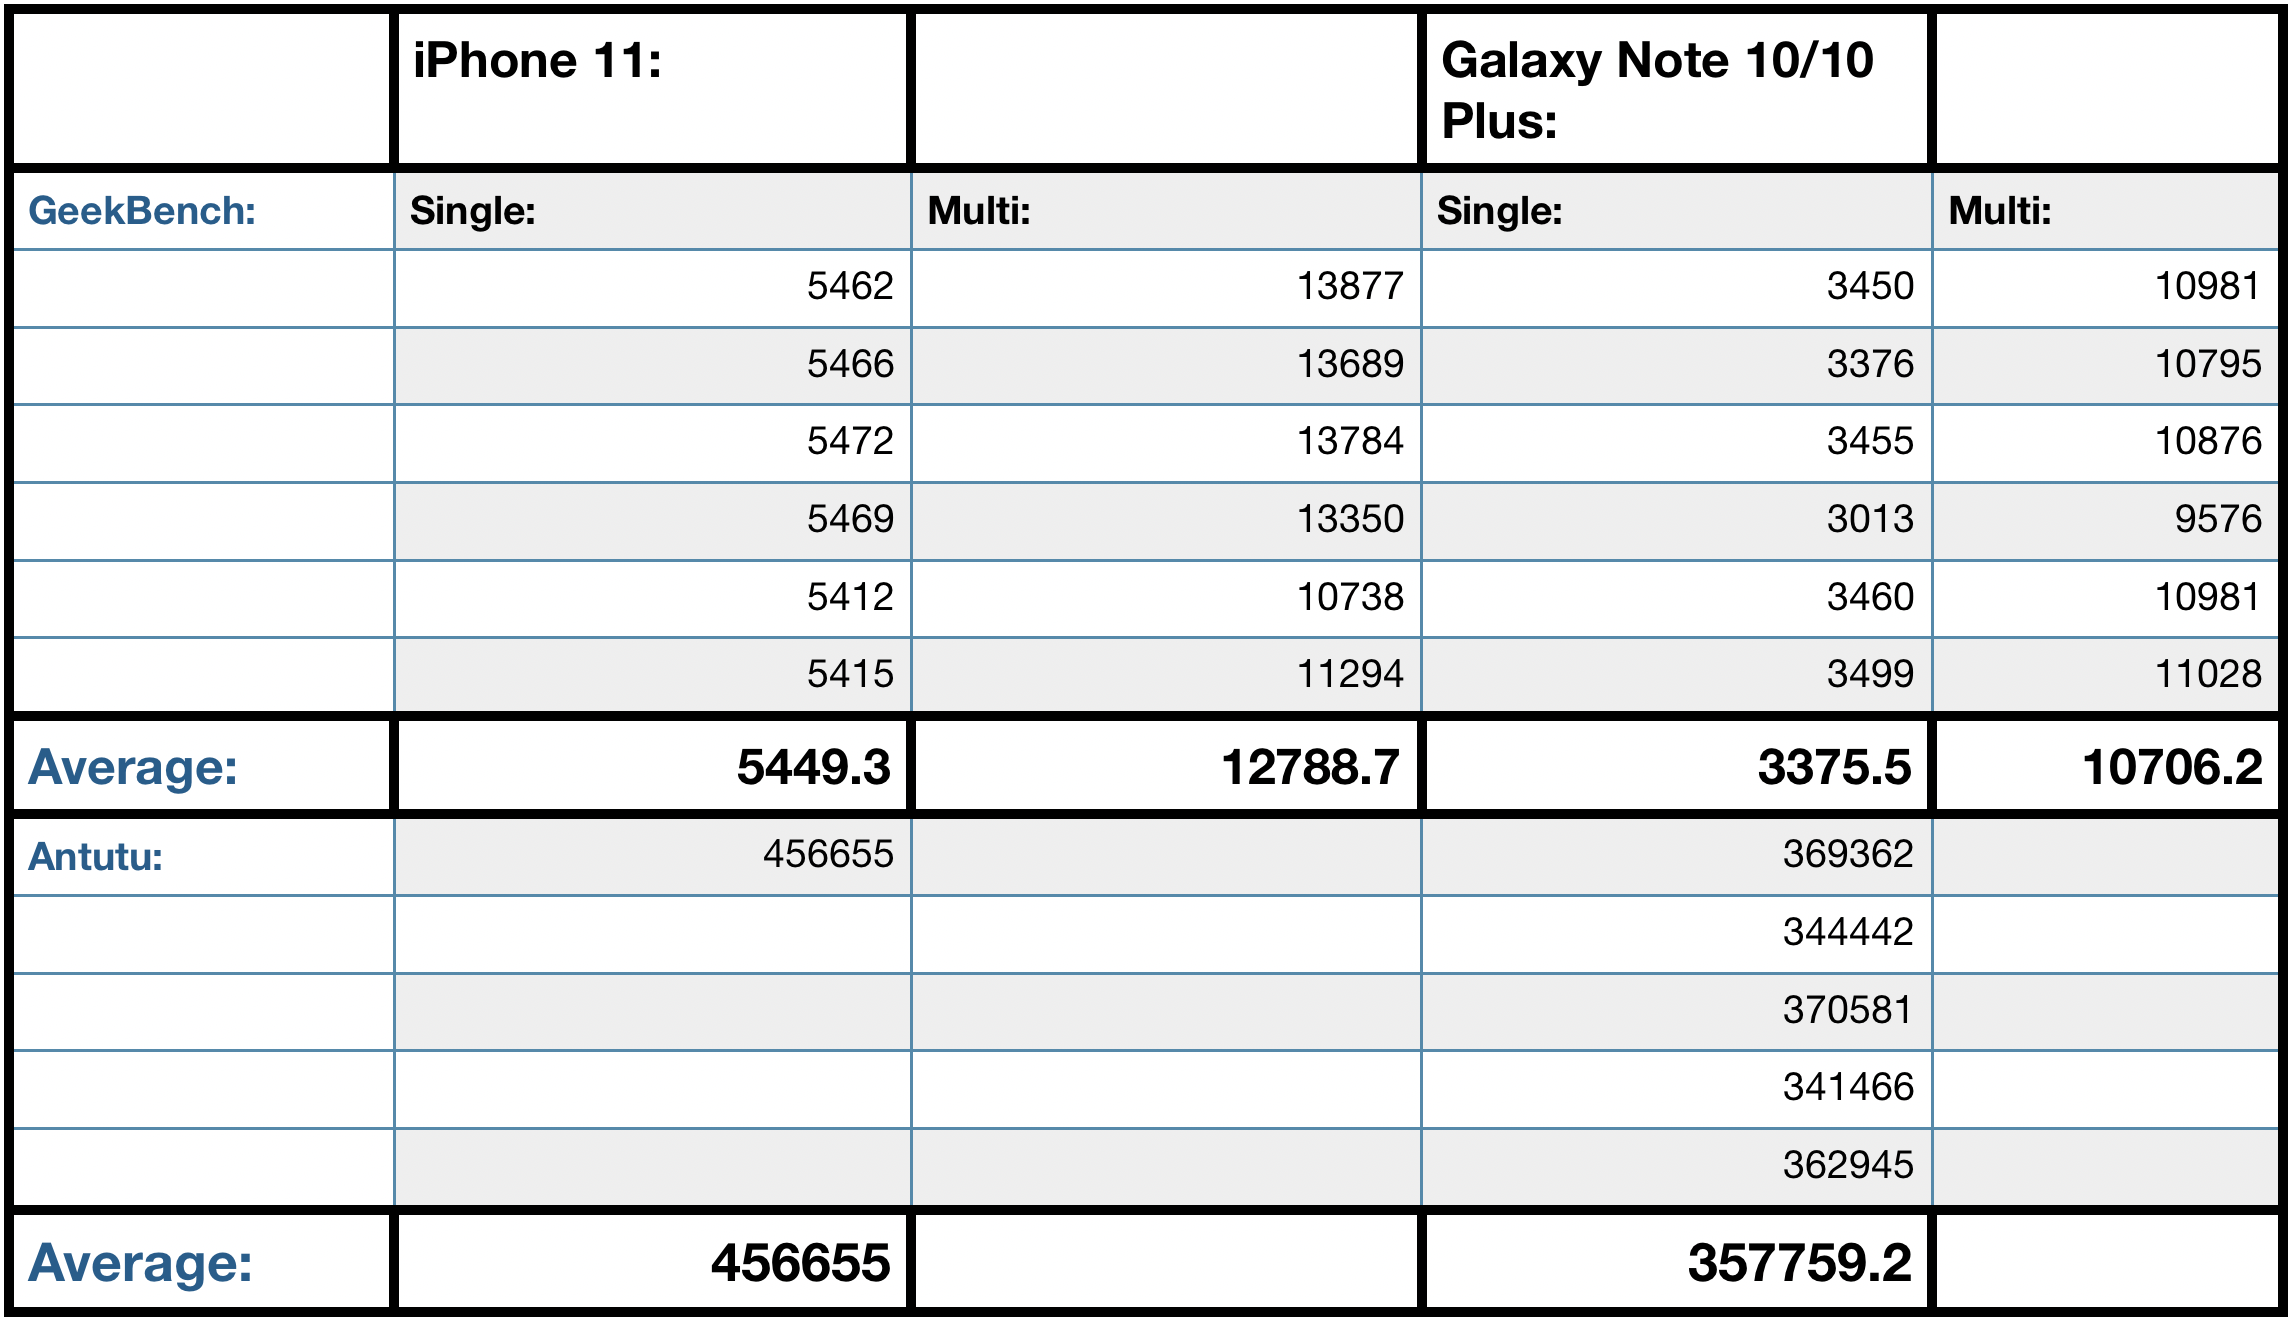 iPhone 11 Vs Note 10 phablets